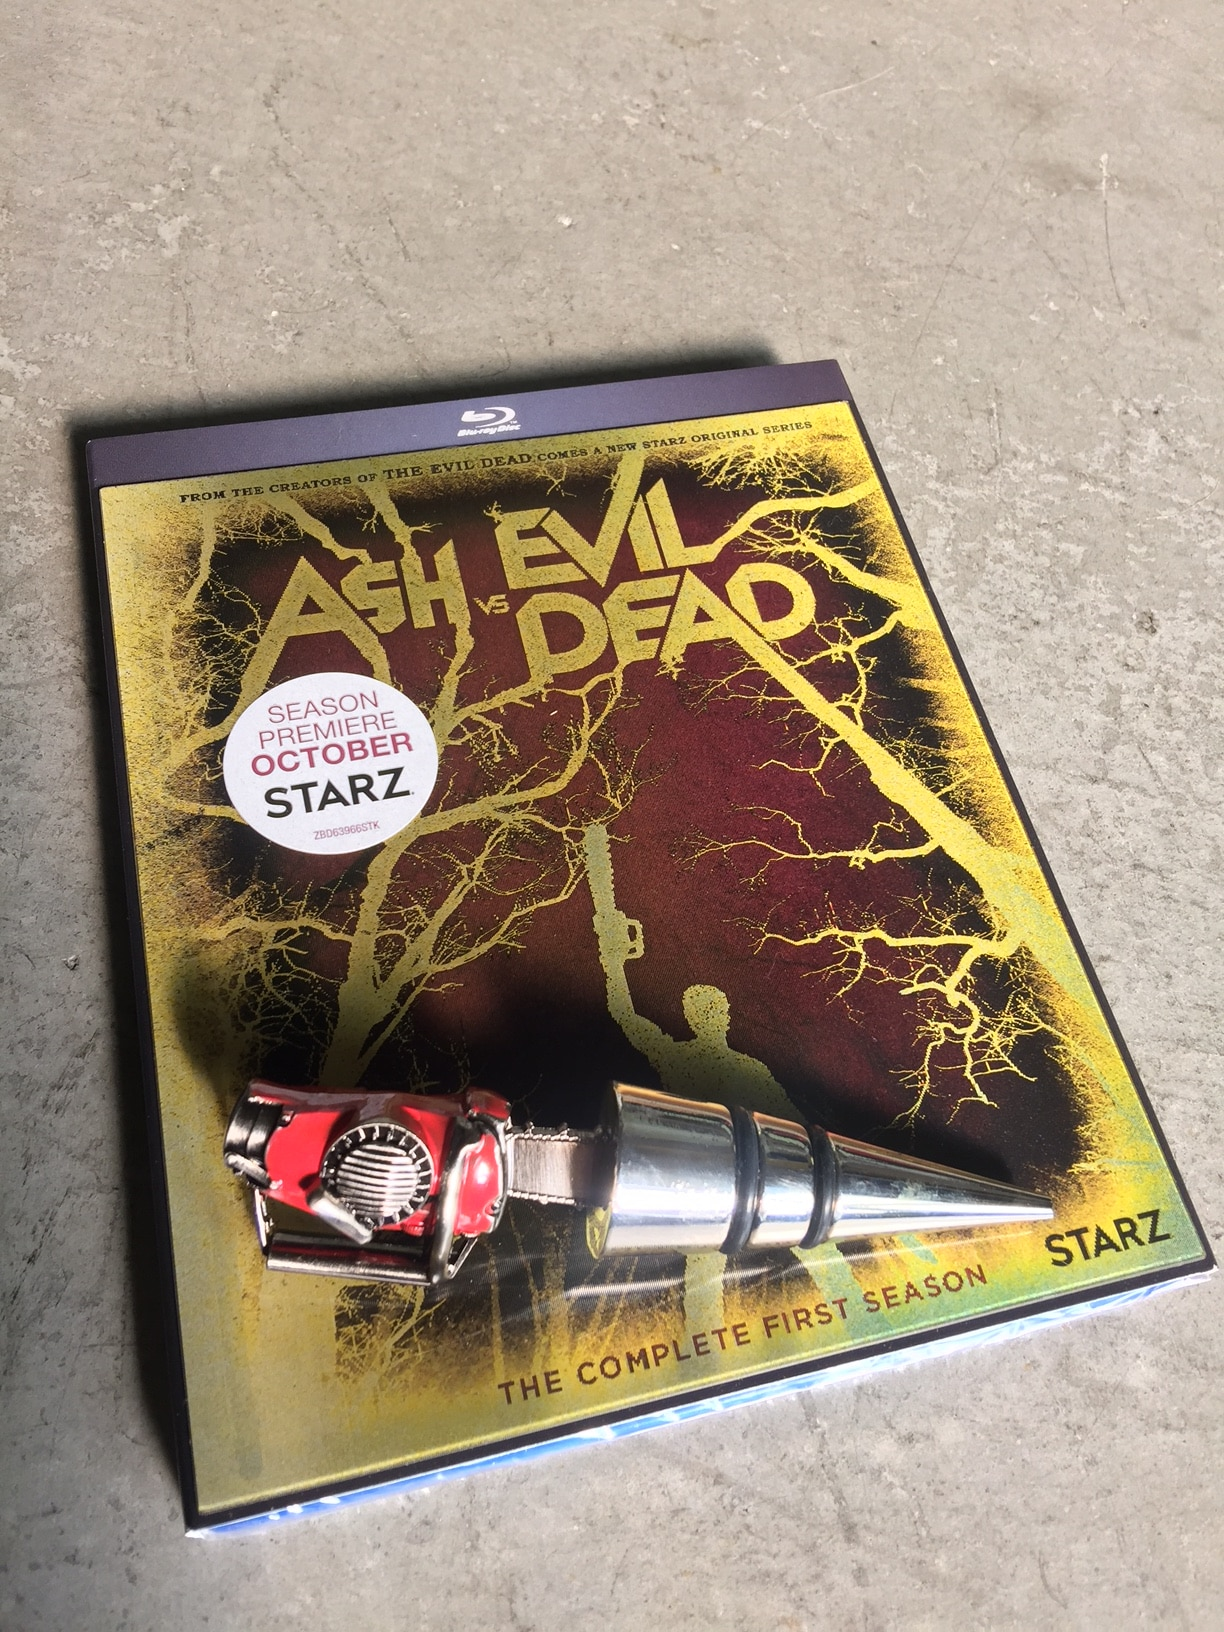 ash contest 2 - Win an Ash vs. Evil Dead Prize Package and More!